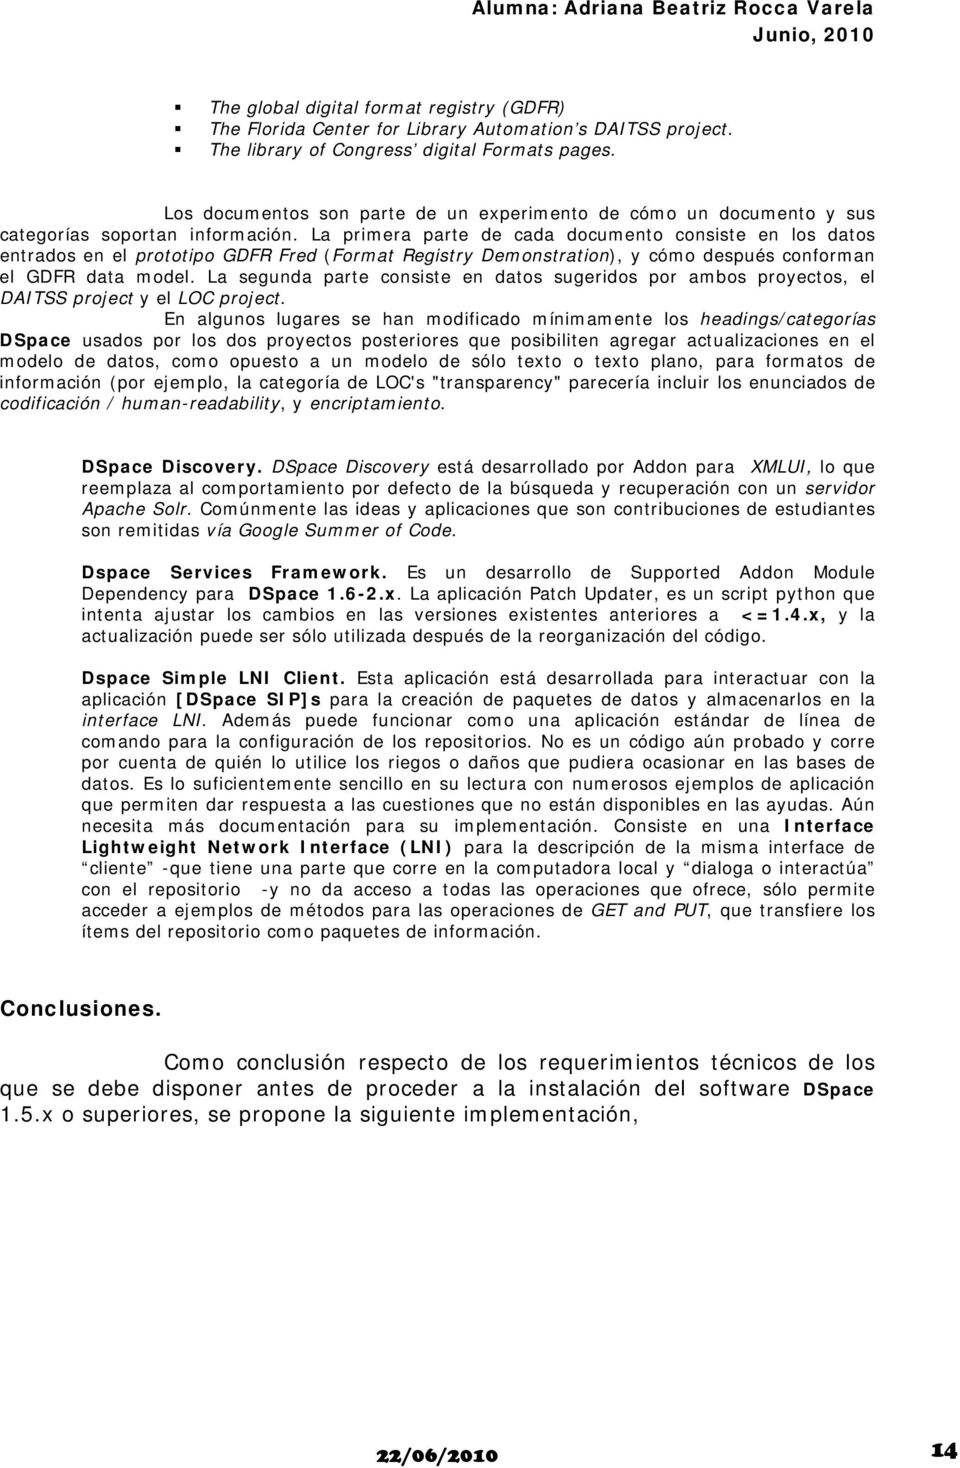 La primera parte de cada documento consiste en los datos entrados en el prototipo GDFR Fred (Format Registry Demonstration), y cómo después conforman el GDFR data model.